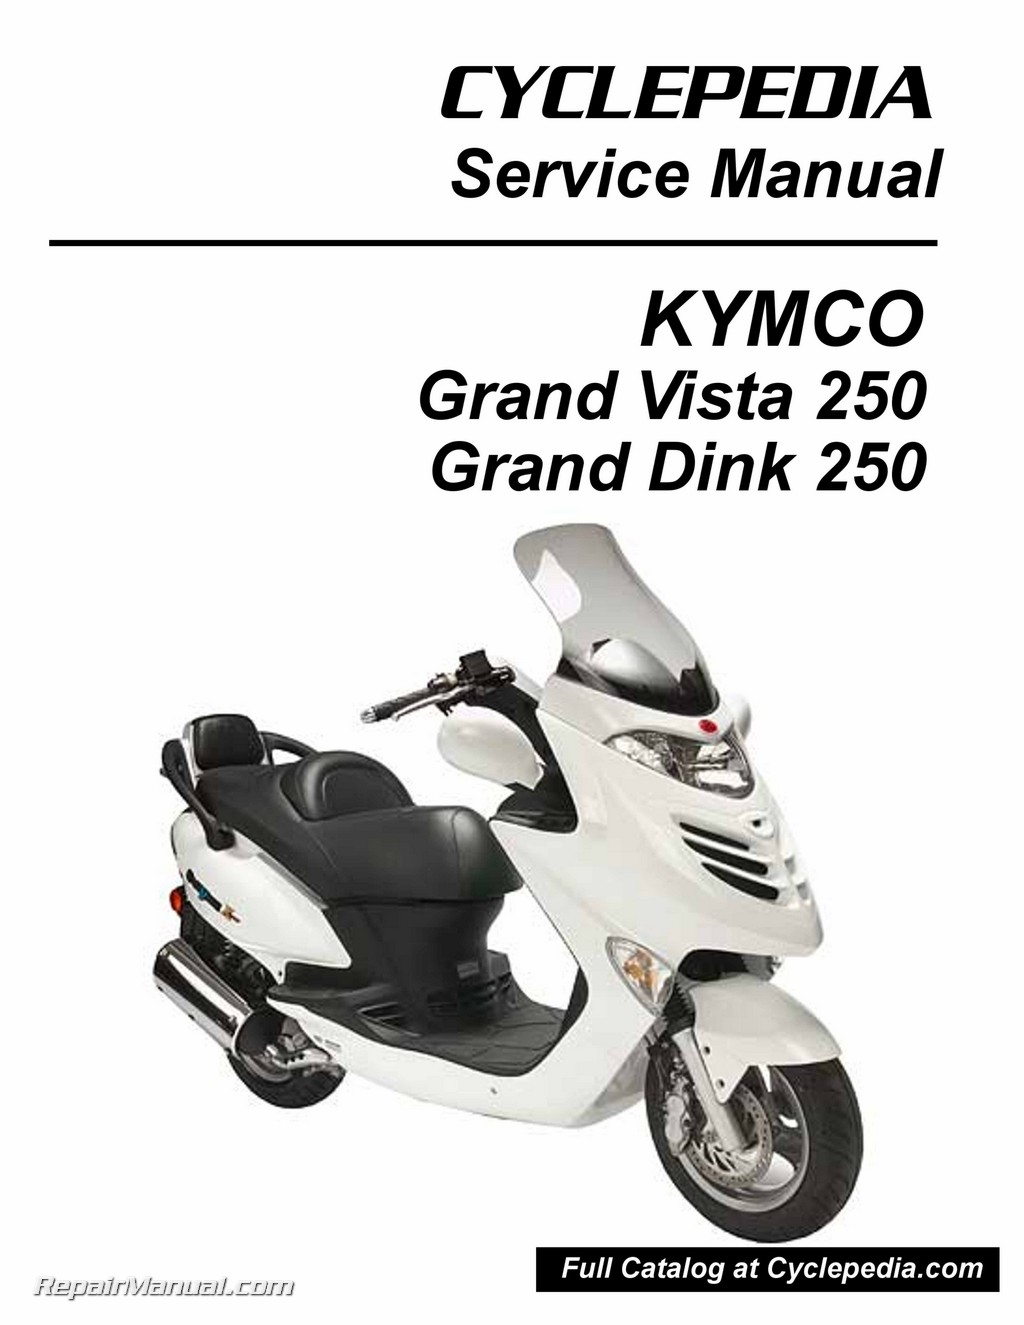 grand vista 250 service manual printed by cyclepedia kymco grand vista 250 service manual printed by cyclepedia